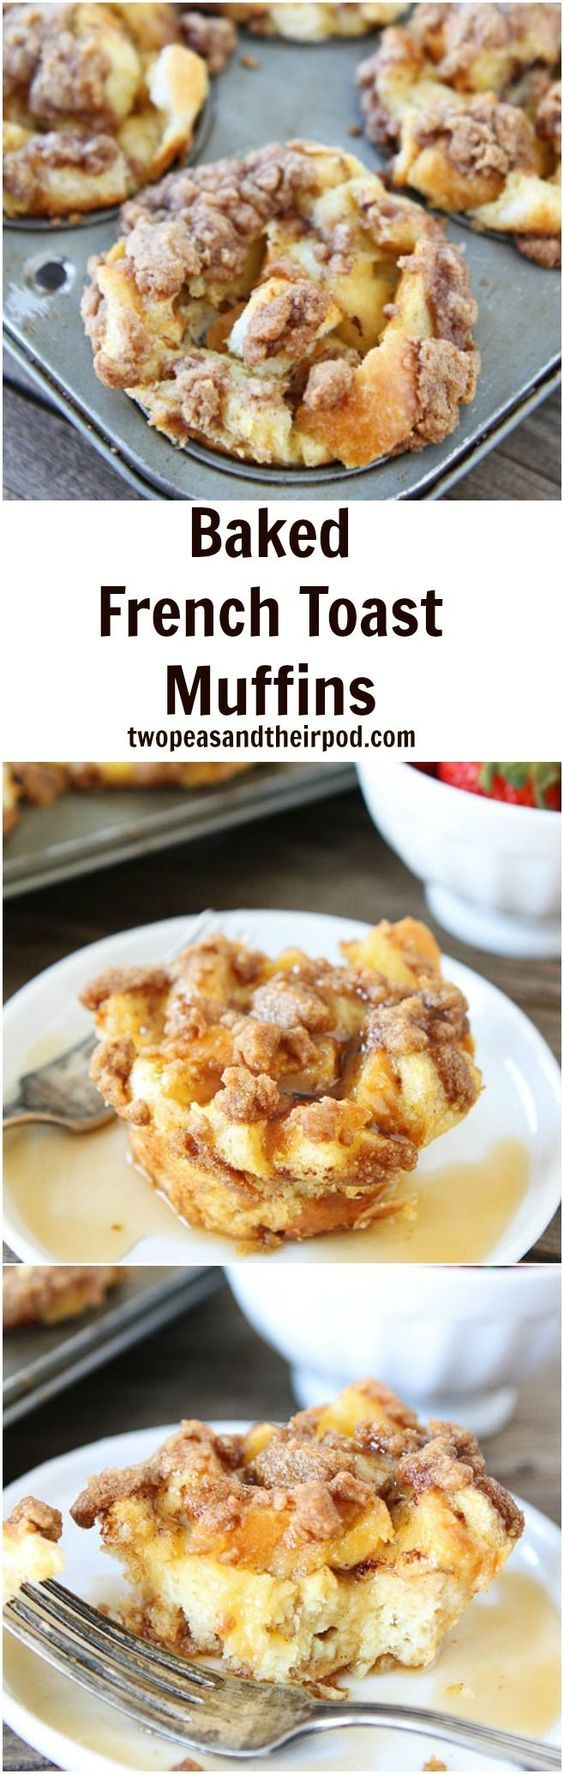 Baked French Toast Muffins Recipe on http://twopeasandtheirpod.com Enjoy French toast in muffin form! These sweet muffins are a real breakfast treat!